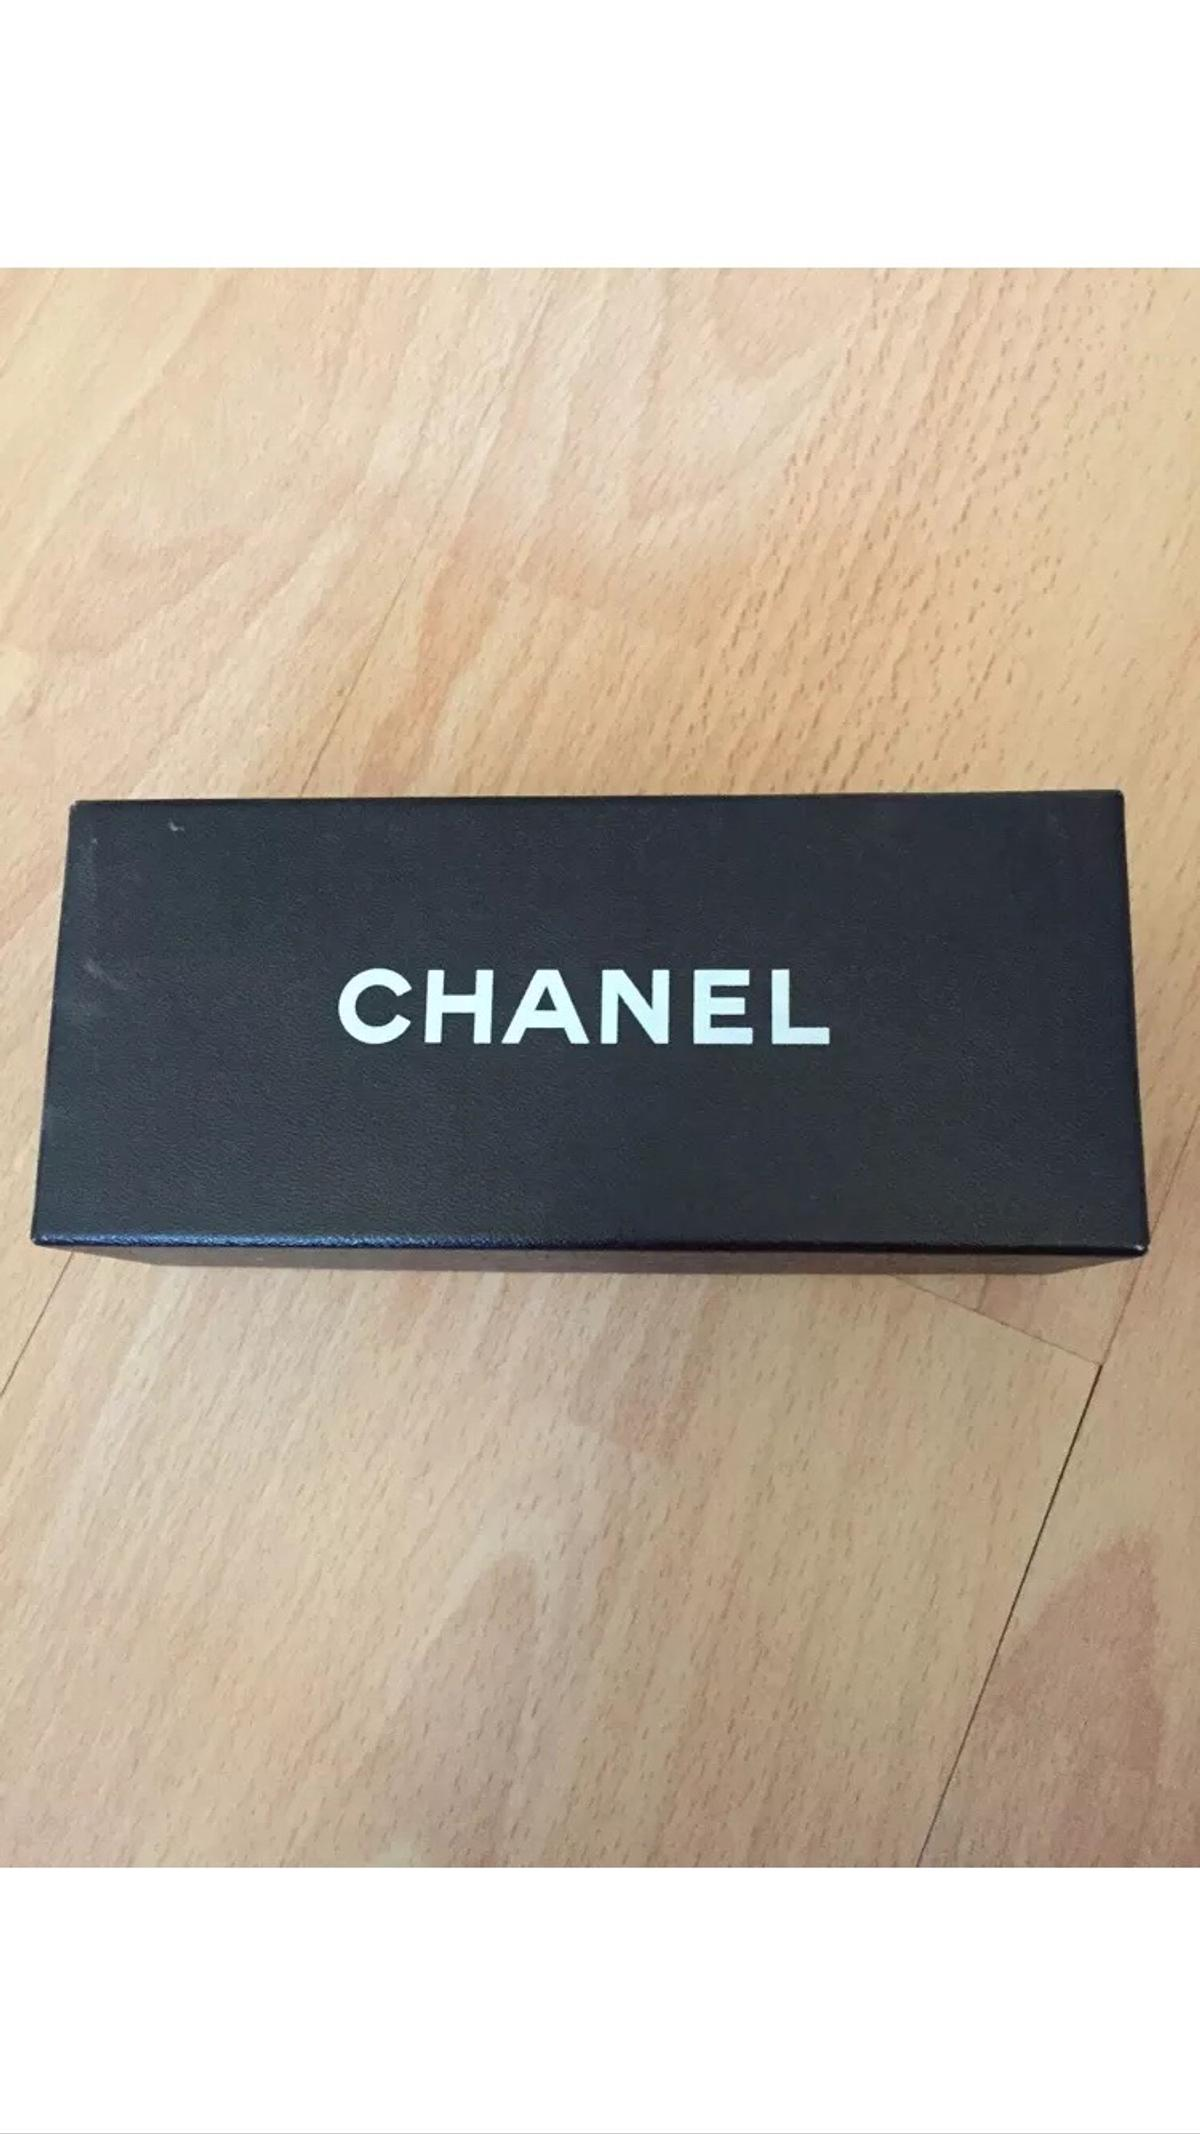 4f34cebba3447 New Women s Chanel Glasses Frames in N2 London for £60.00 for sale ...